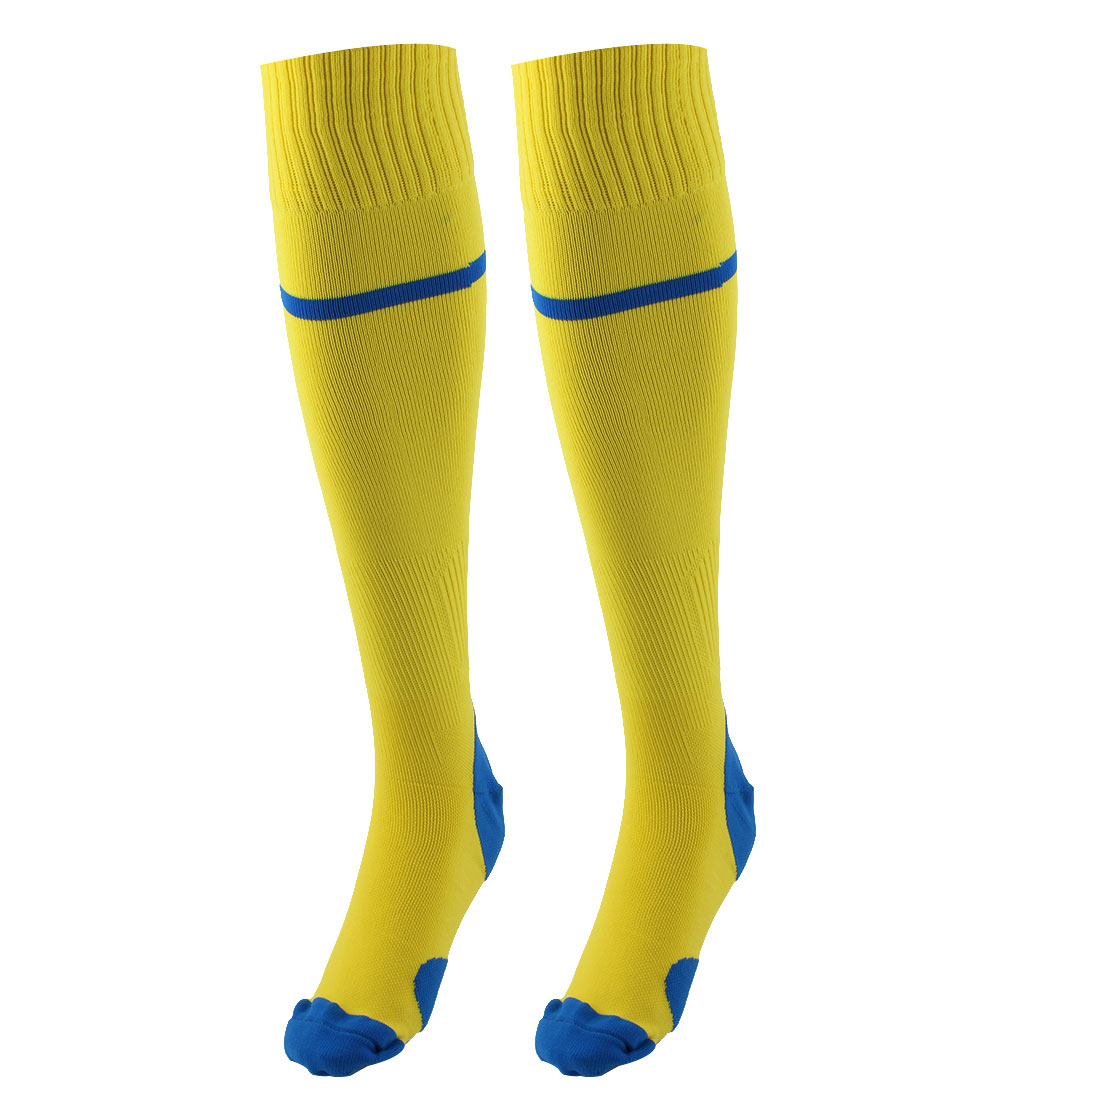 Outdoor Activities Nylon Knee High Stretchy Rugby Football Soccer Training Socks Yellow Pair